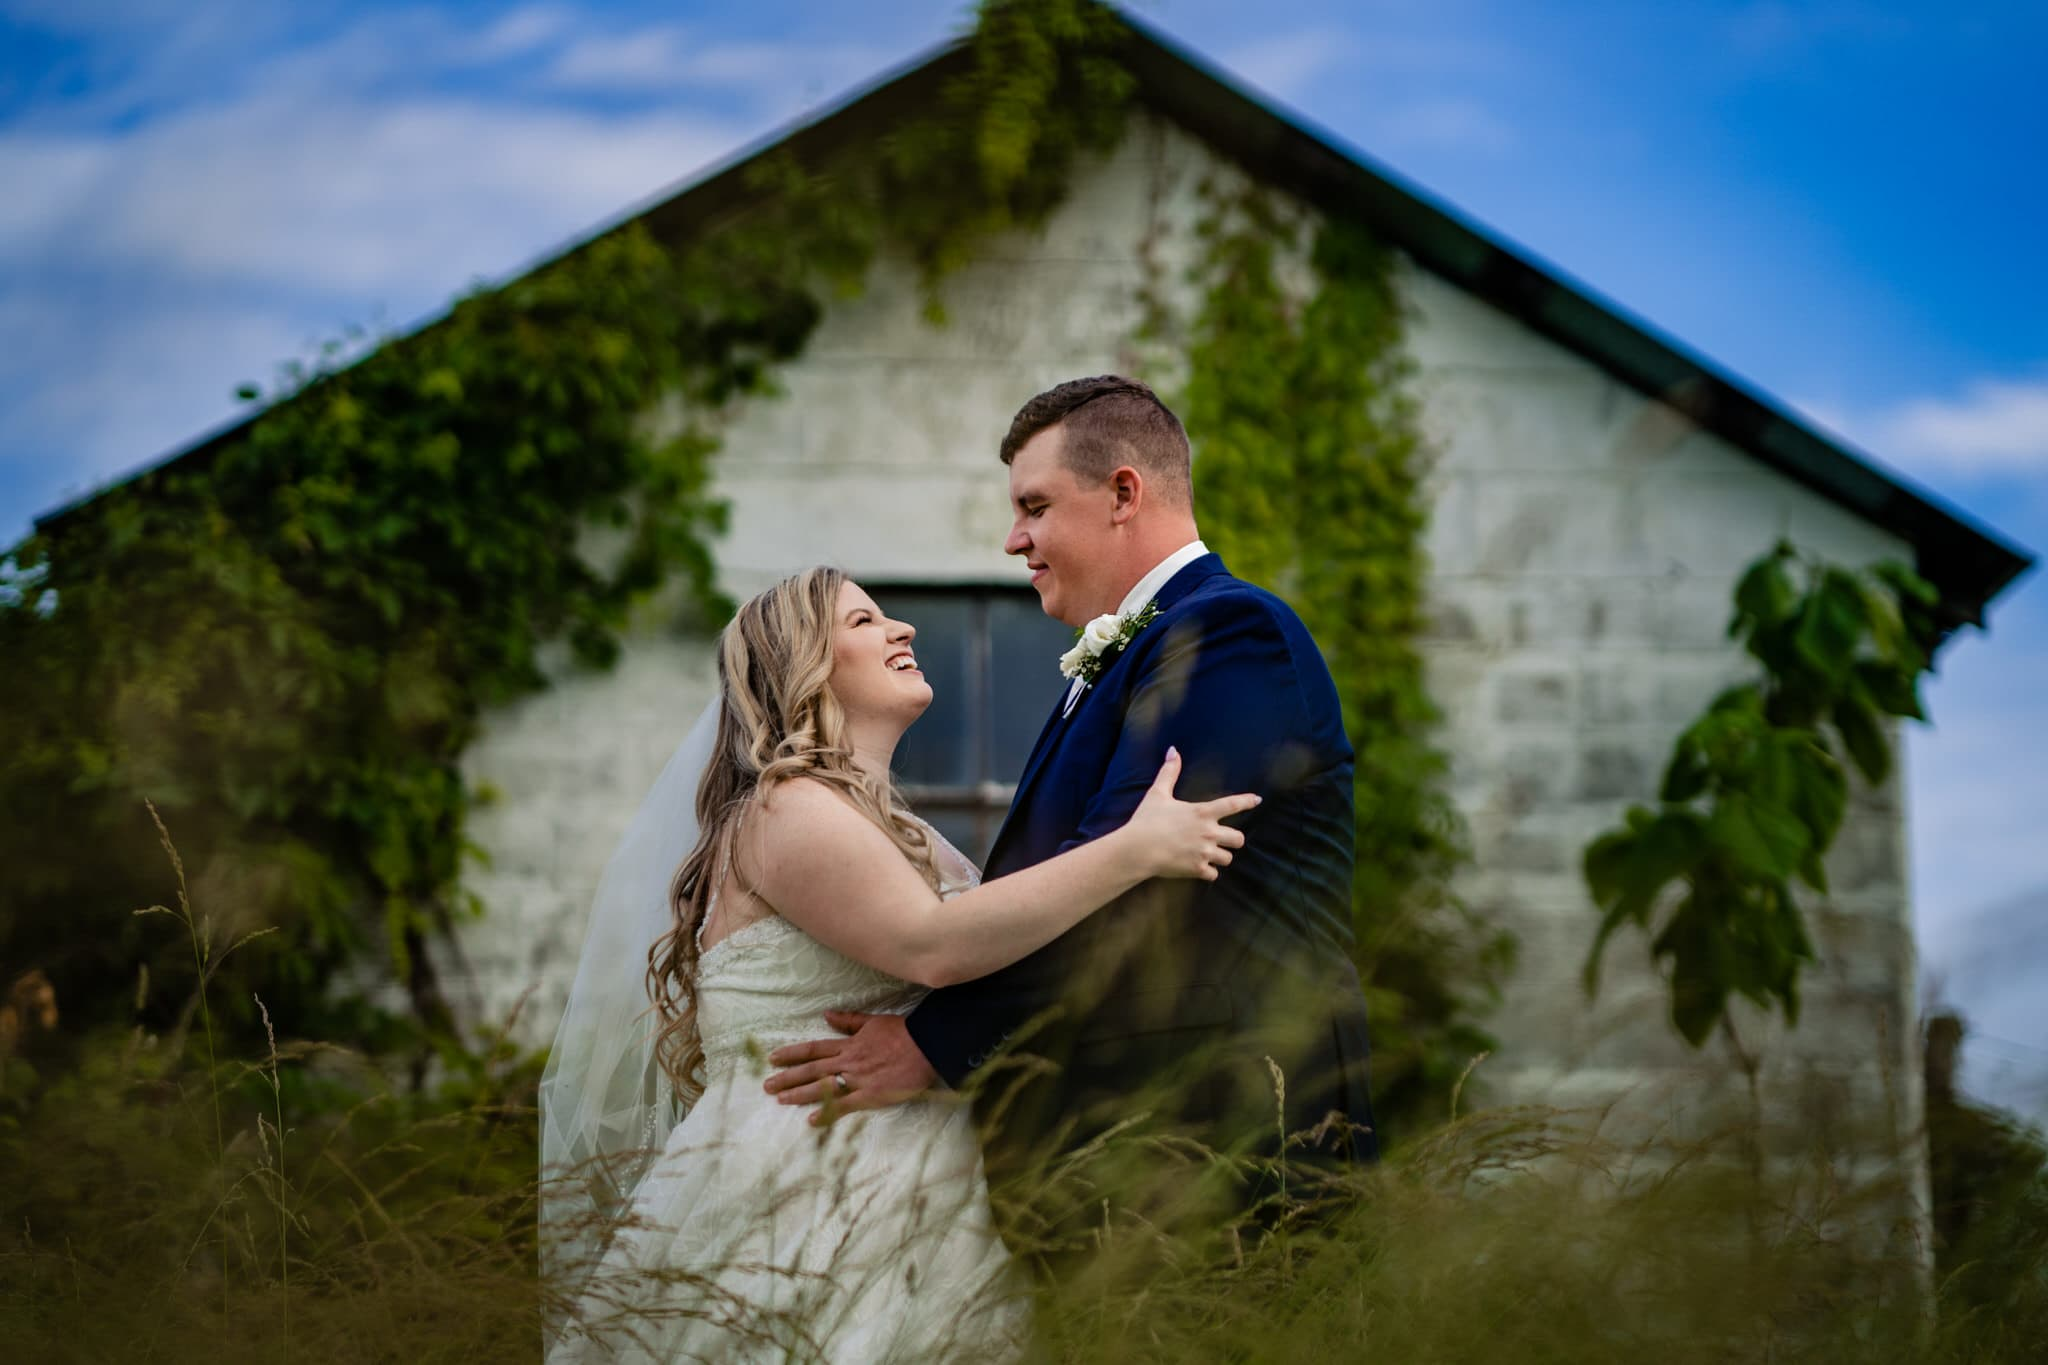 Destination Wedding Photographers - Outdoor Wedding Photos